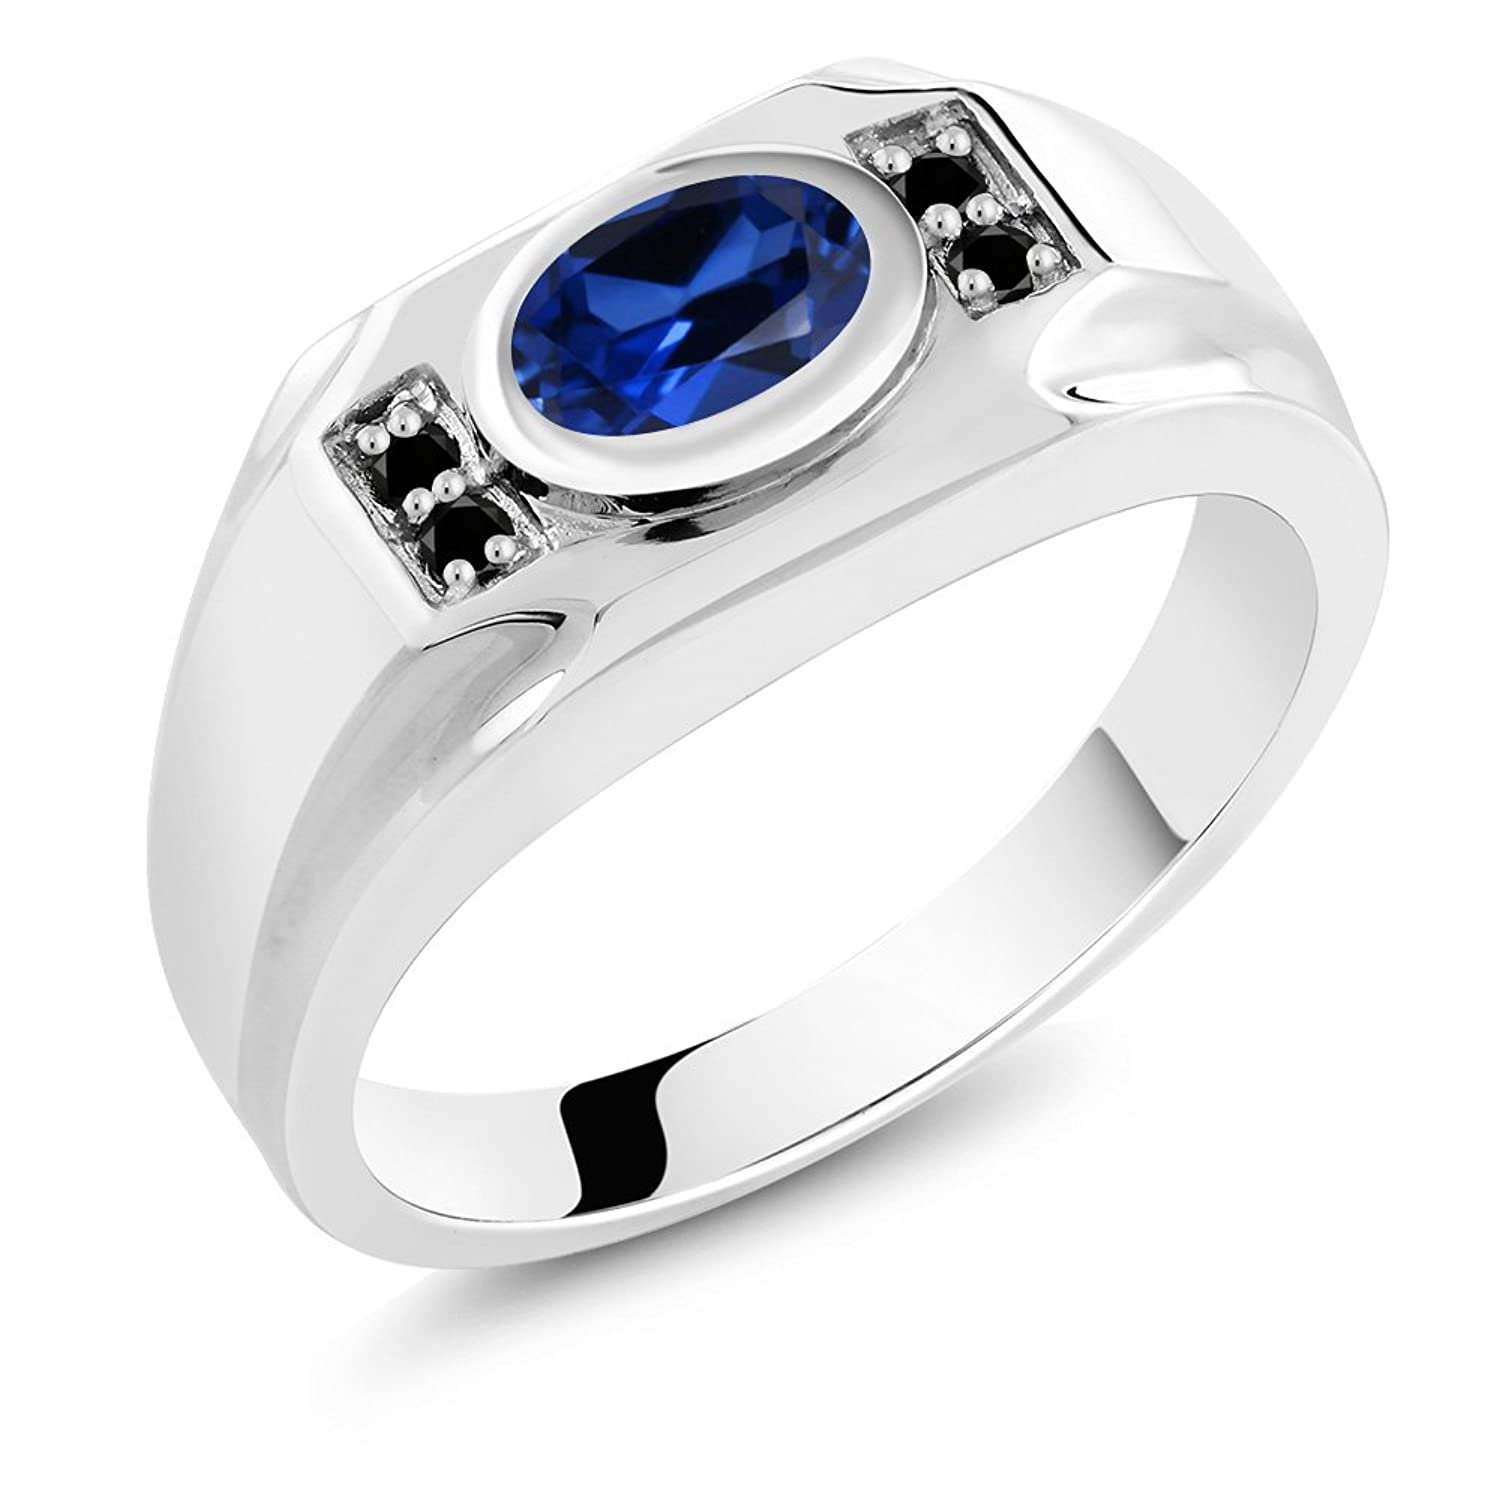 1.77 Ct Oval Blue Simulated Sapphire Black Diamond 925 Sterling Silver Men's Ring